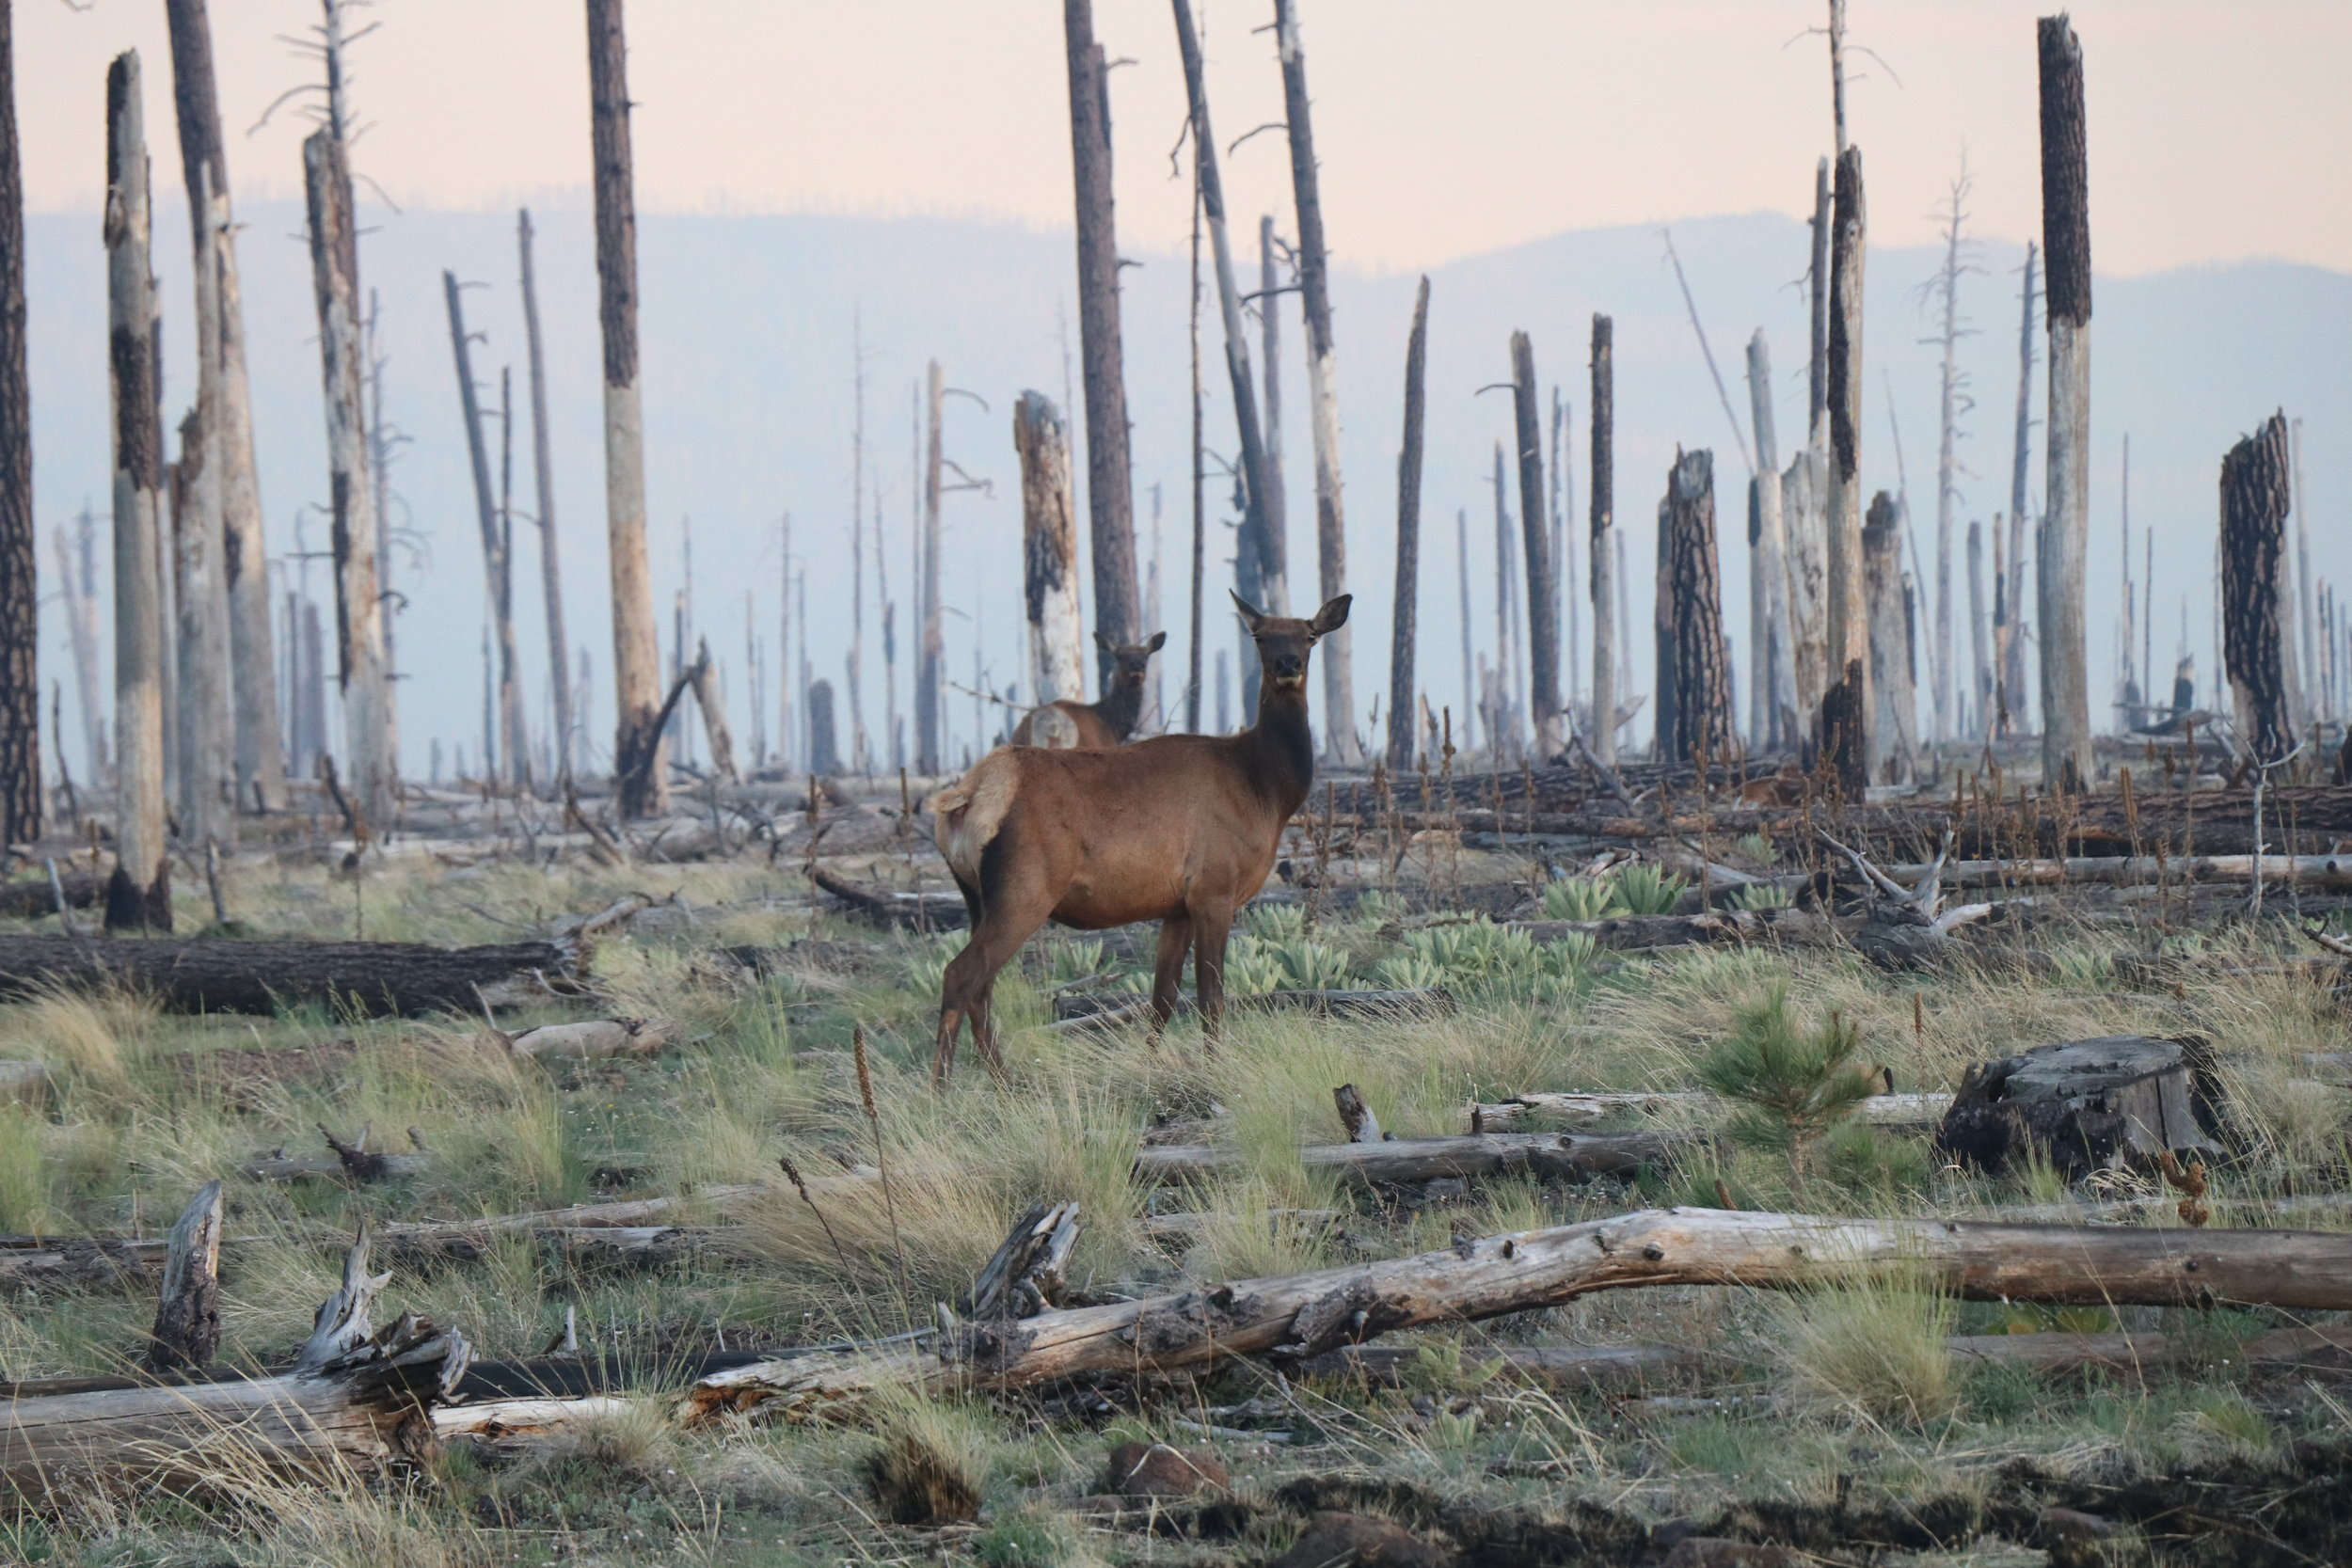 Elk stand out among charred skeletons of Ponderosa Pine.